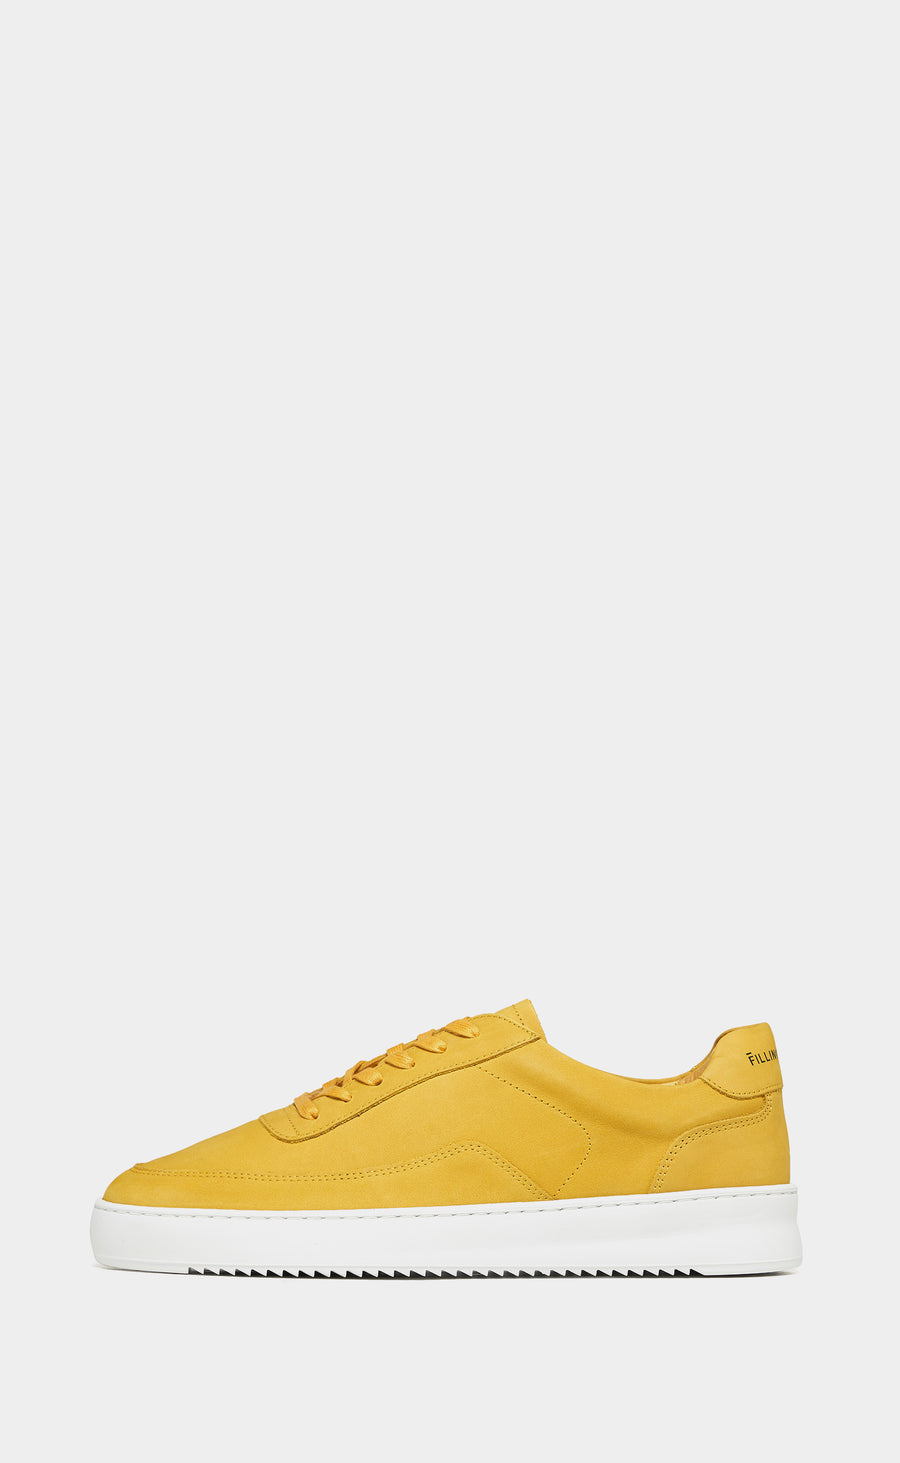 Mondo Ripple Nubuck Yellow - men